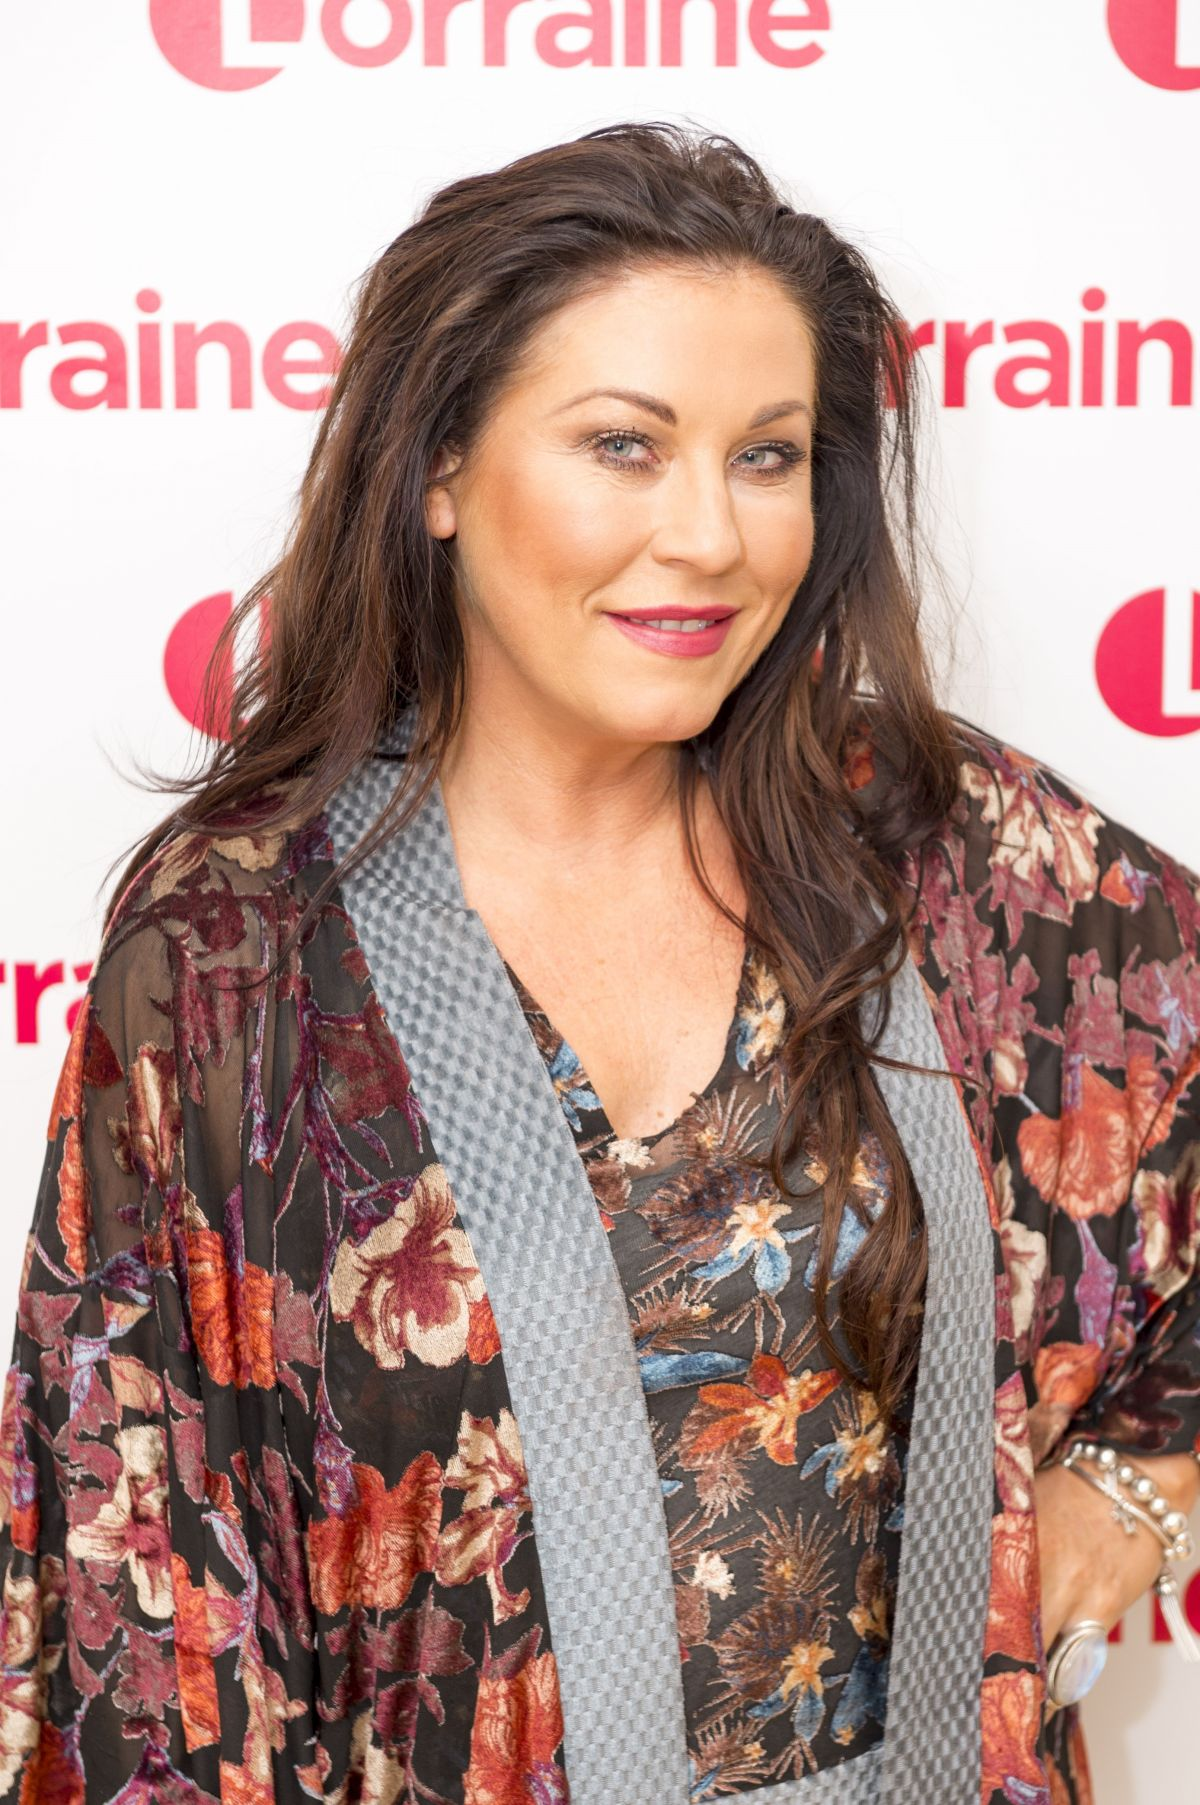 Jessie Wallace At 'Lorraine' TV show, London - Celebzz ...